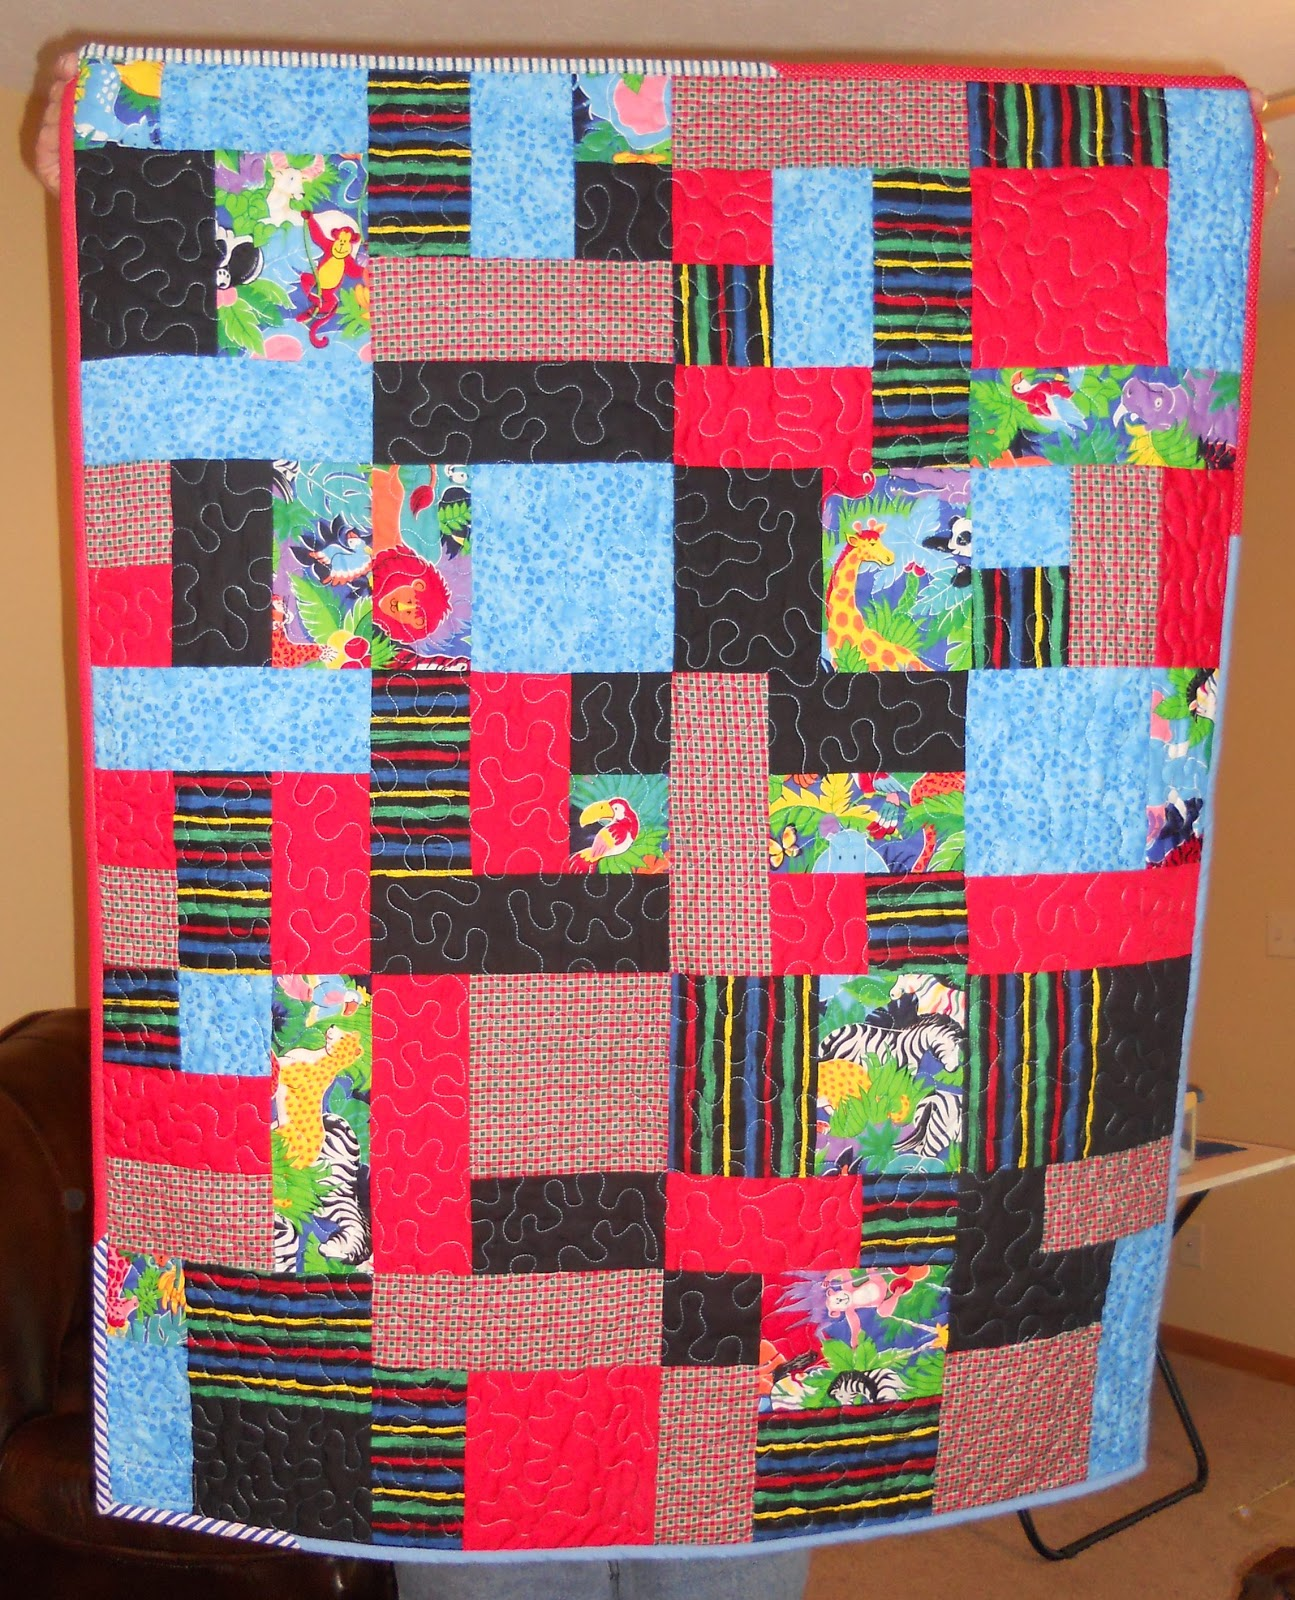 Quilts from the Bluffs: Quilt Deliveries - Project Linus